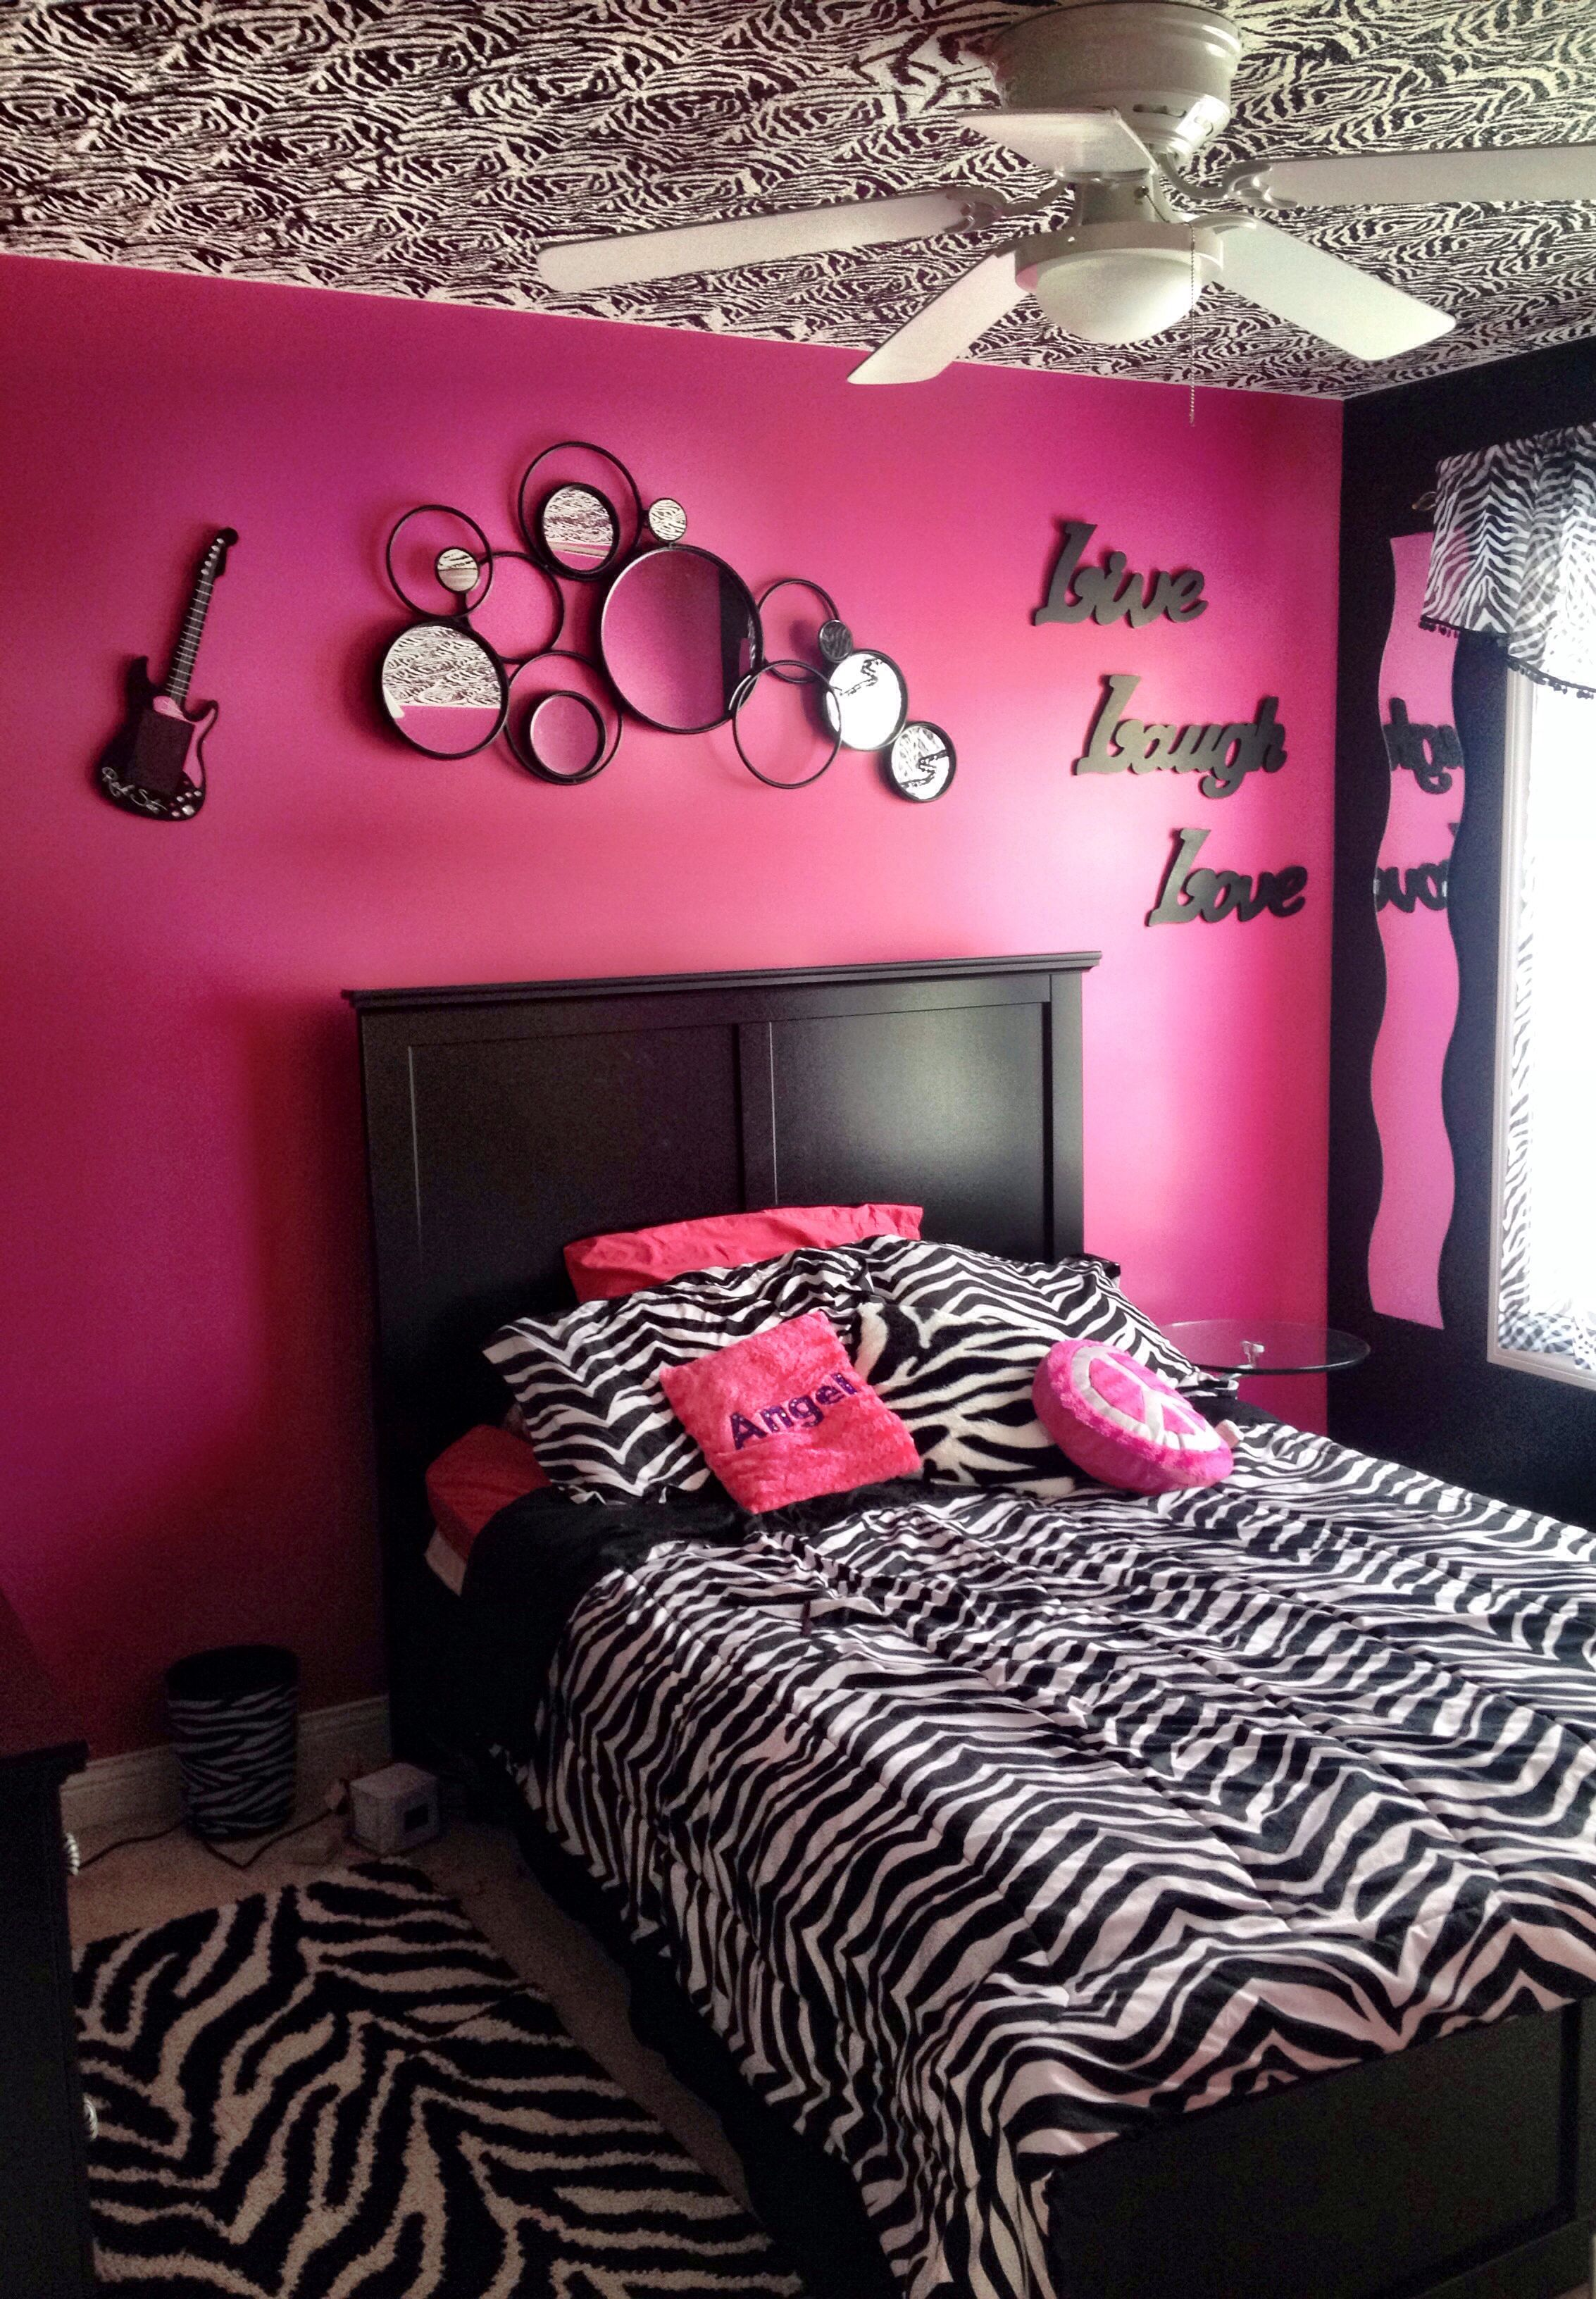 Bedroom With Hand Painted Zebra Stripes